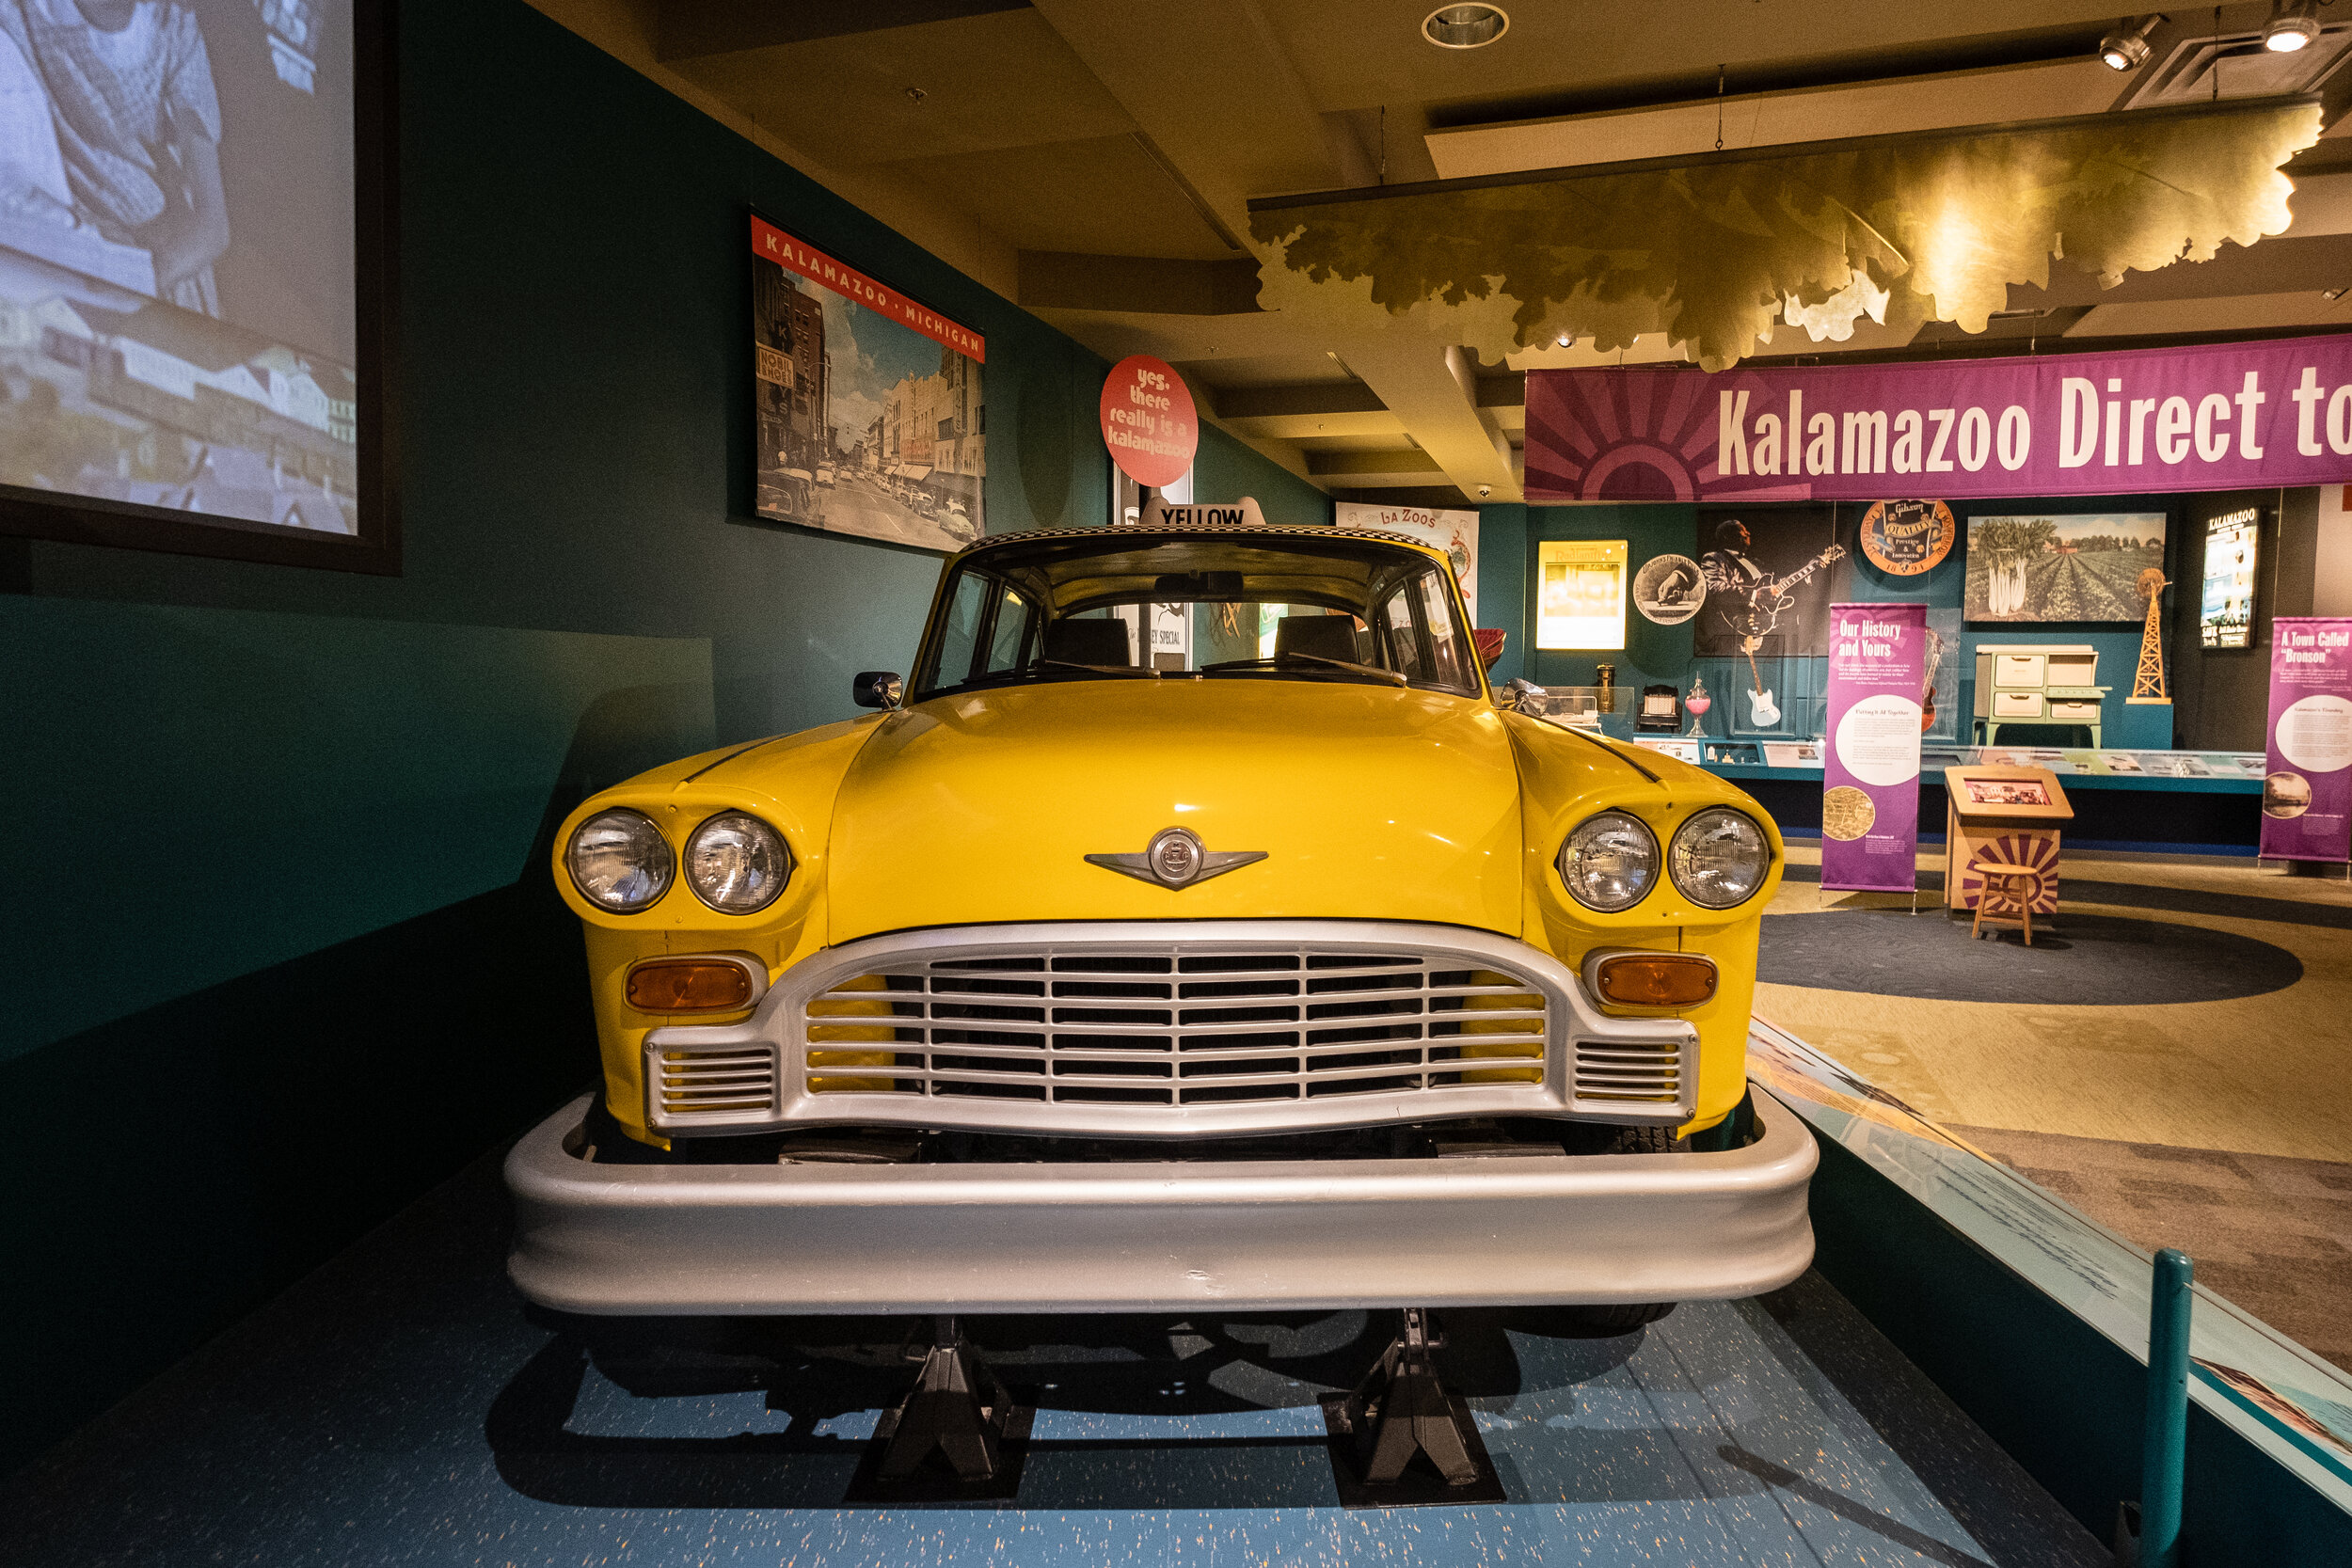 The checker cab started in Kalamazoo! There's one in the Kalamazoo Valley Museum!